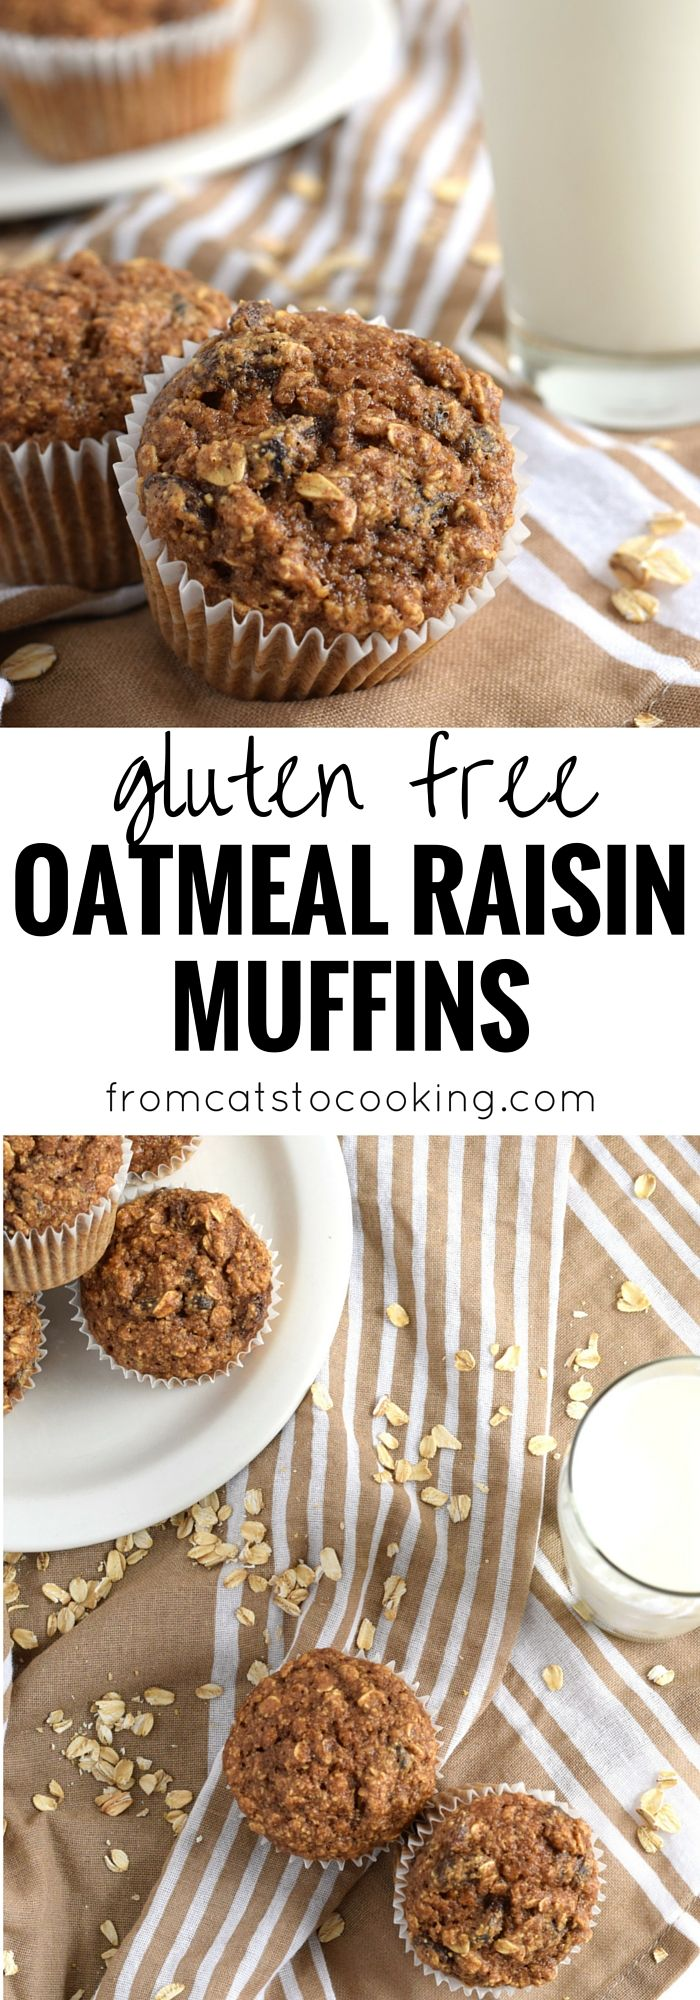 Made with rolled oats, raisins, unsweetened applesauce and almond butter, these Gluten Free Oatmeal Raisin Muffins are ready in only 30 minutes and are the perfect after-dinner dessert or brunch pastry. // fromcatstocooking.com